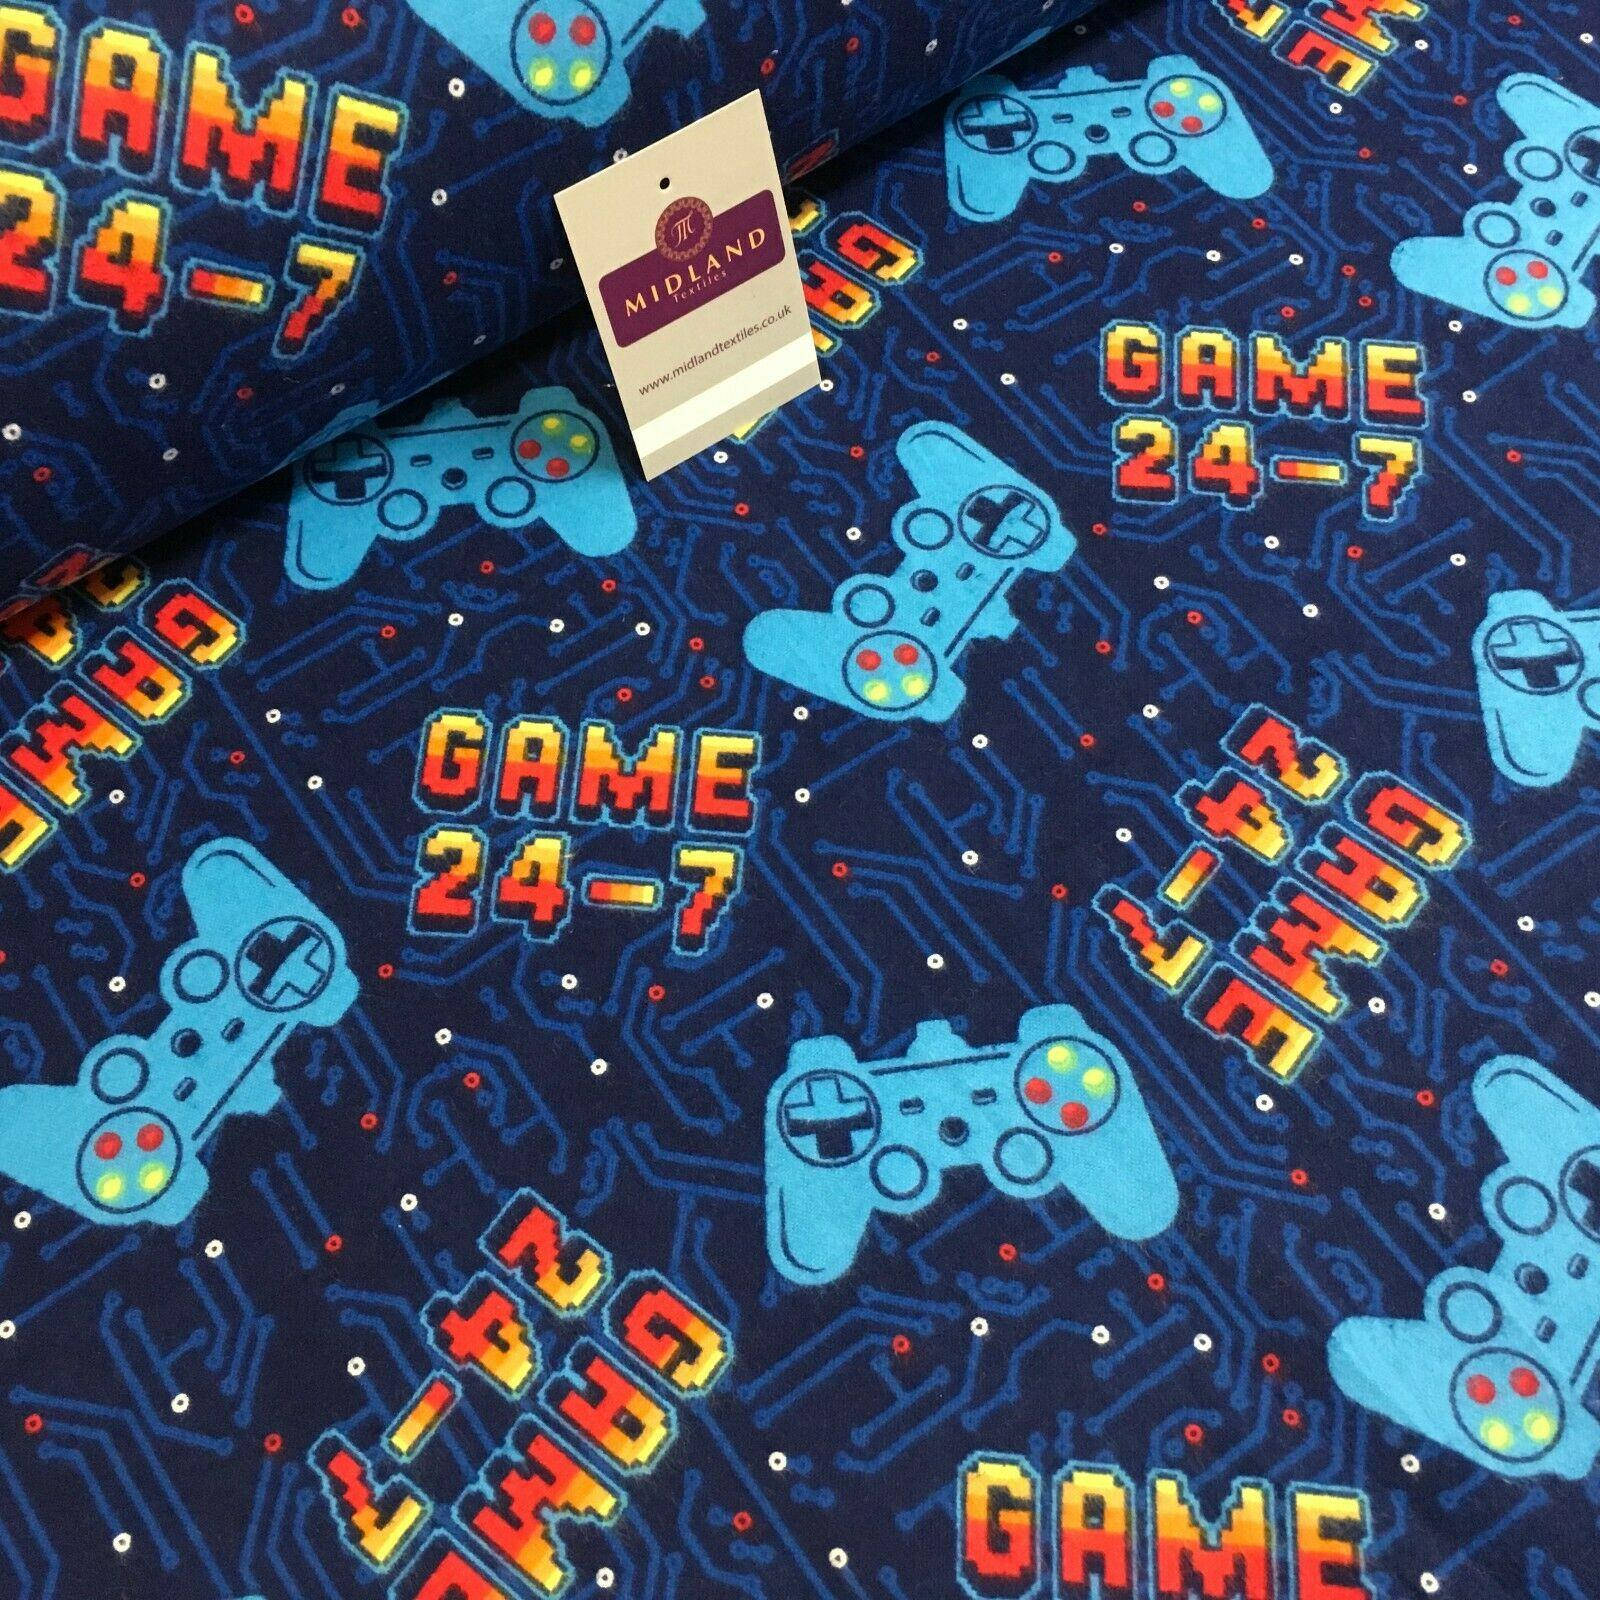 Navy Blue Retro Game Console Cotton Winceyette Brushed Fabric 110cm Mk1229-4